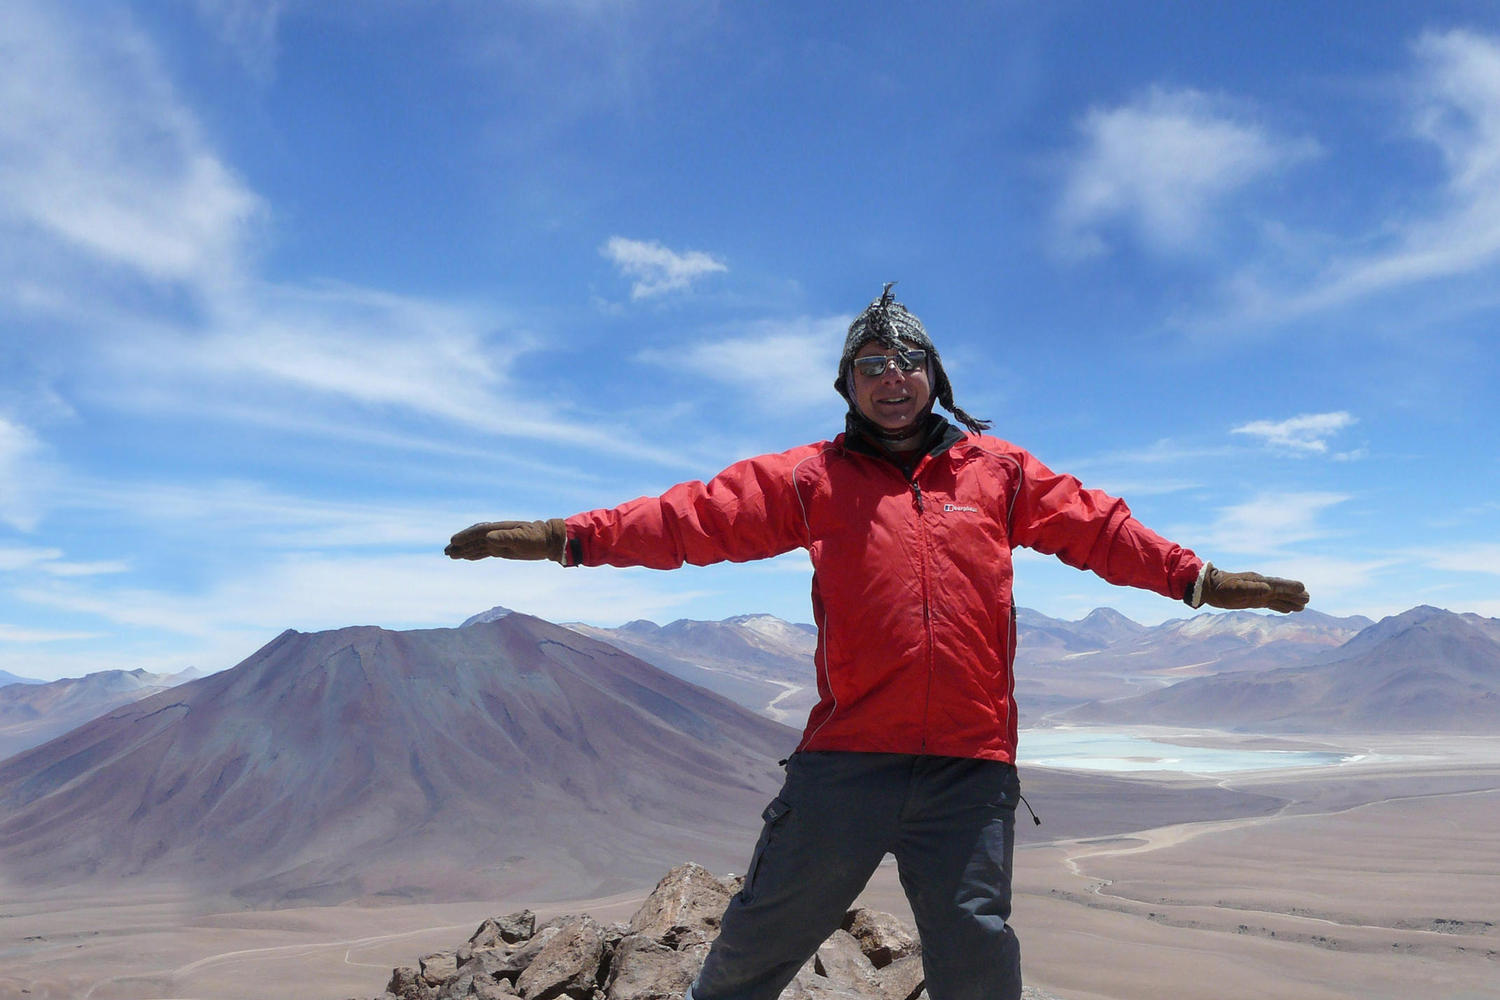 Standing high on top of Toco Volcano in the Atacama Desert